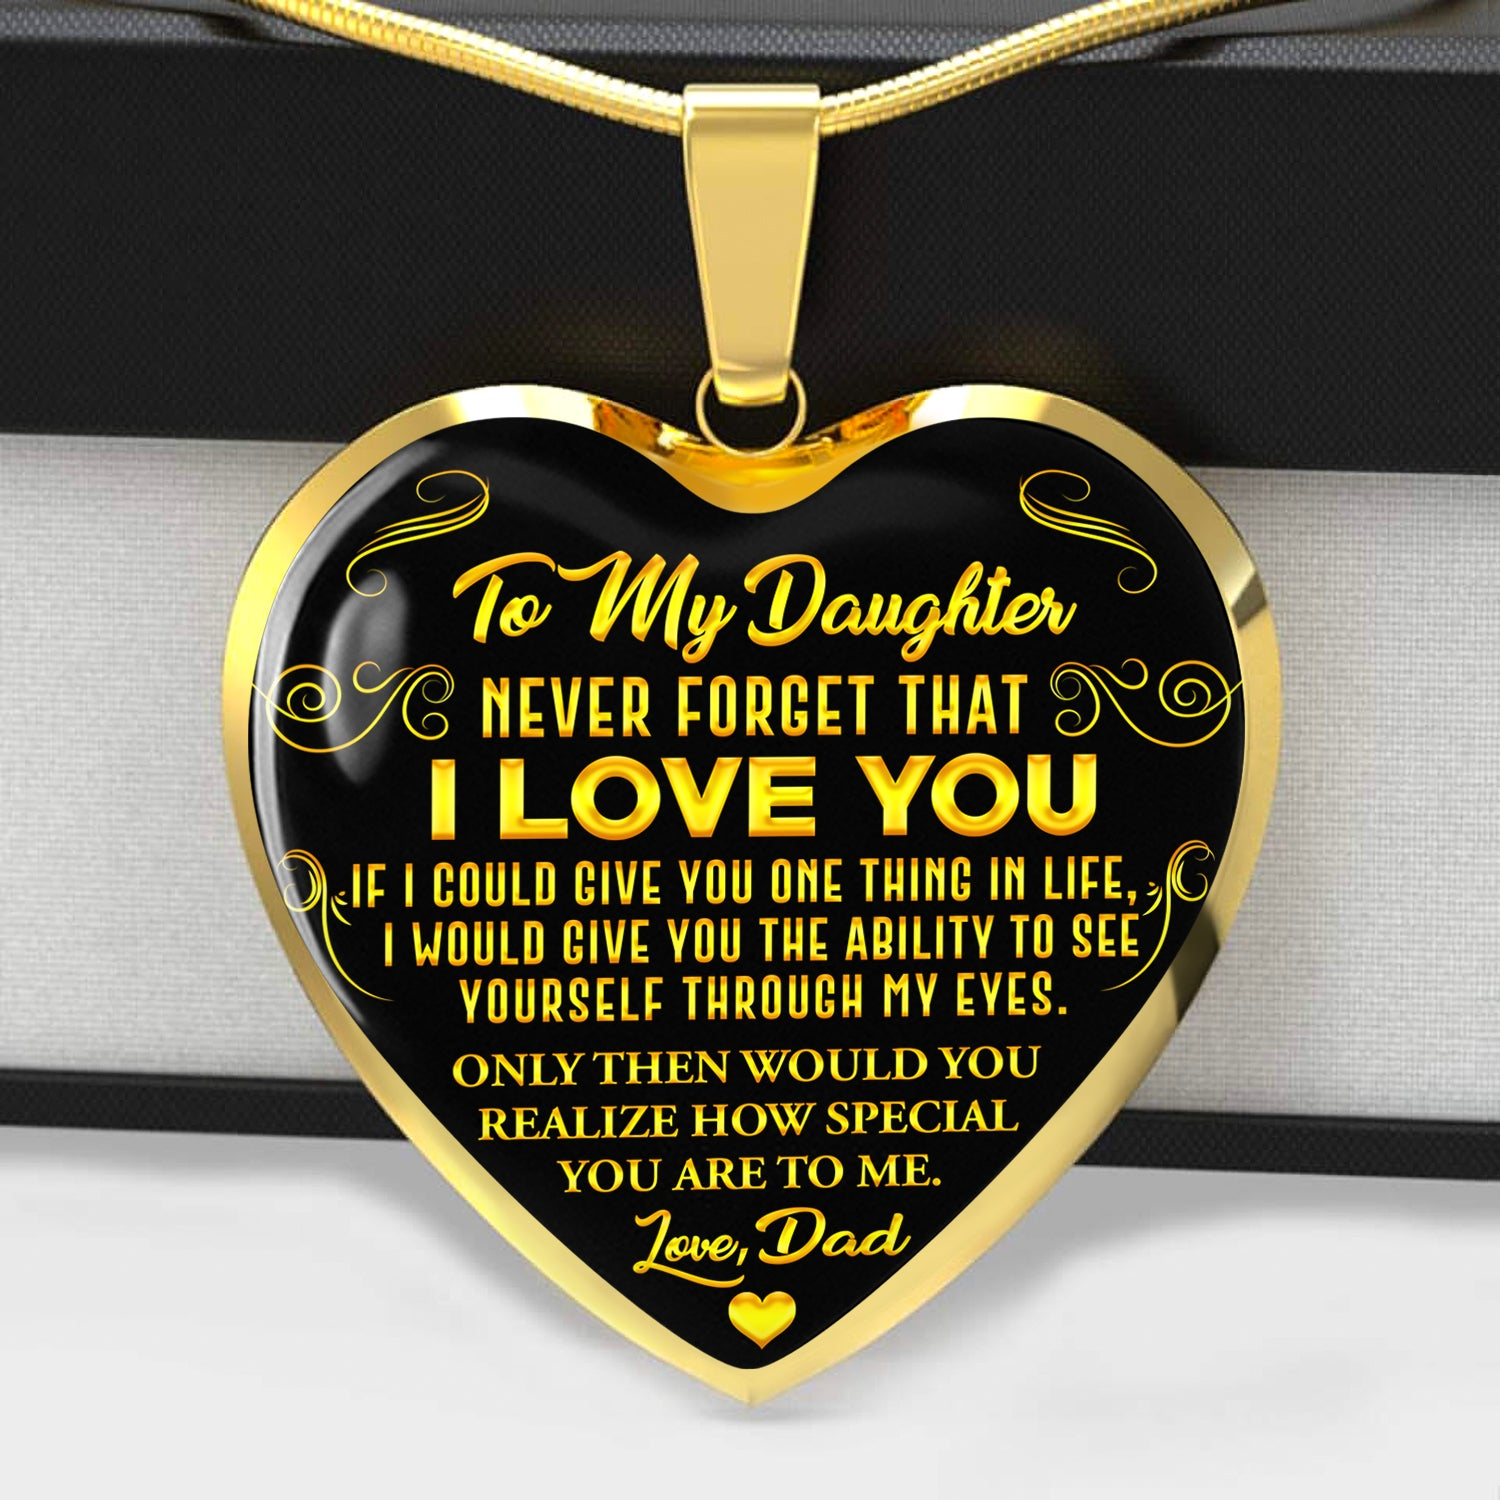 Never Forget - I Love You - Love Dad - Gold Text Necklace